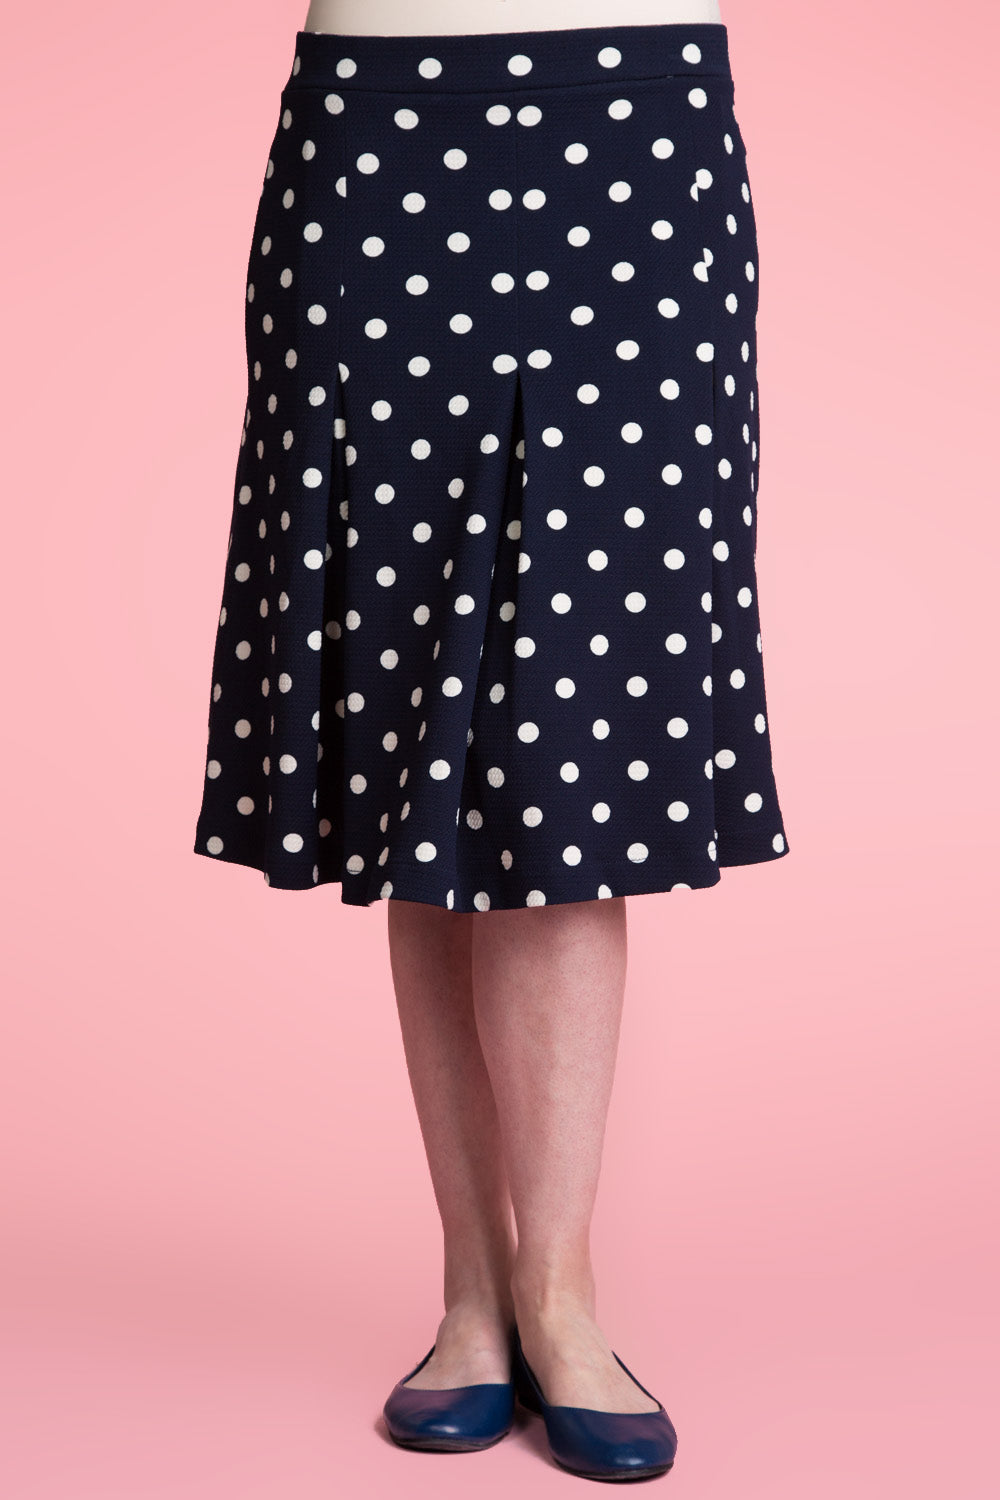 Type 1 Spot It Skirt